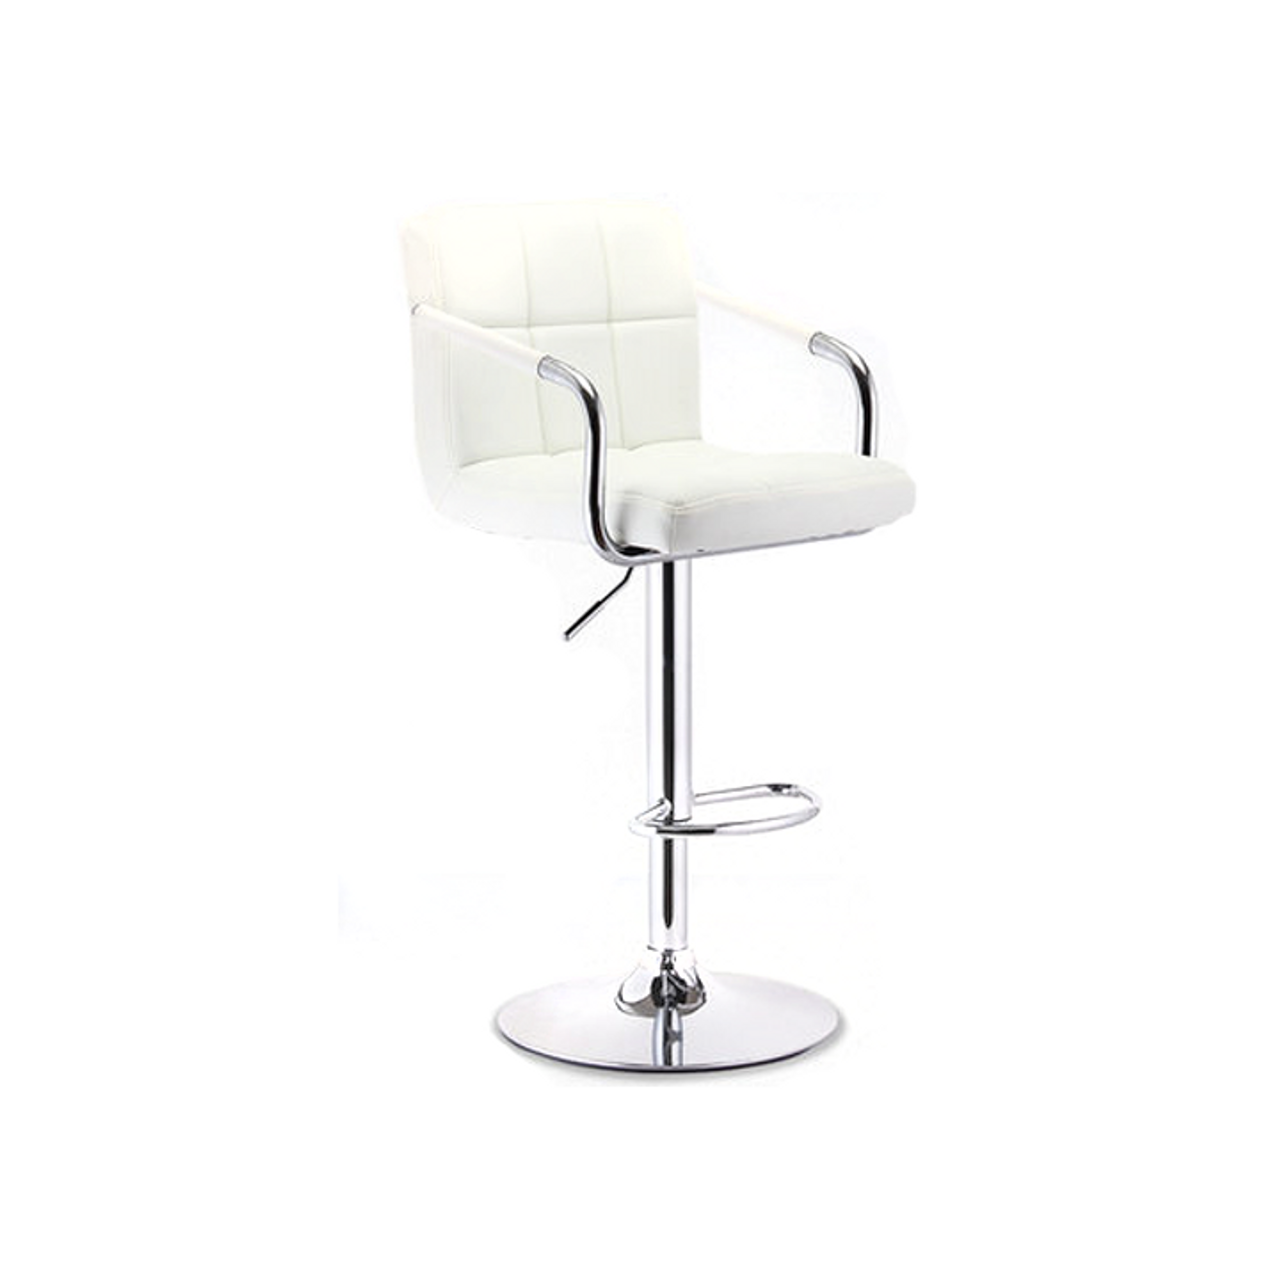 Pleasing Pu Leather Hydraulic Lift Bar Stools Camellatalisay Diy Chair Ideas Camellatalisaycom